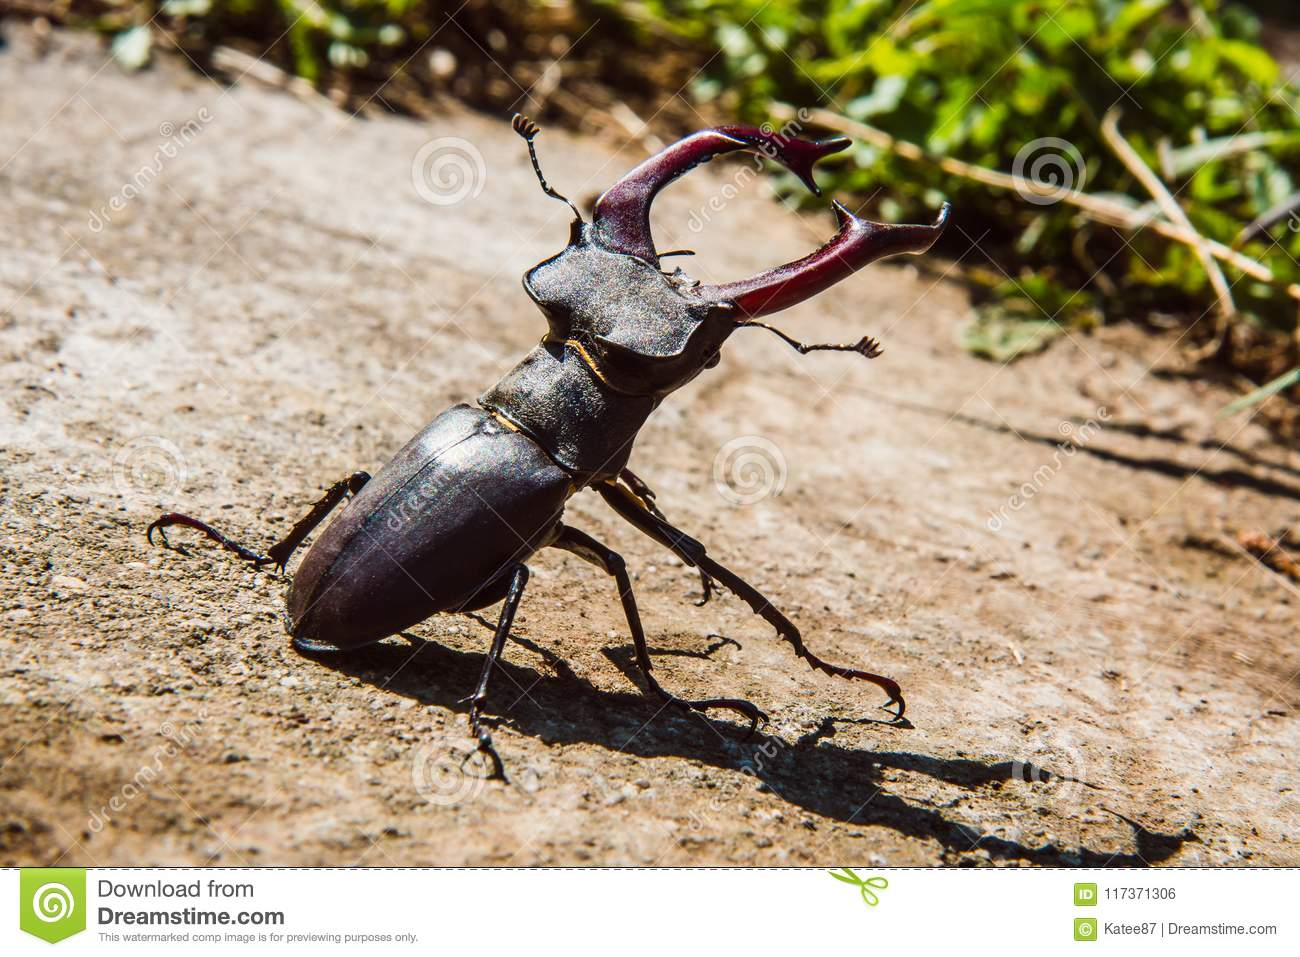 Stag Beetle Is A Very Interesting Animal That Appears In The